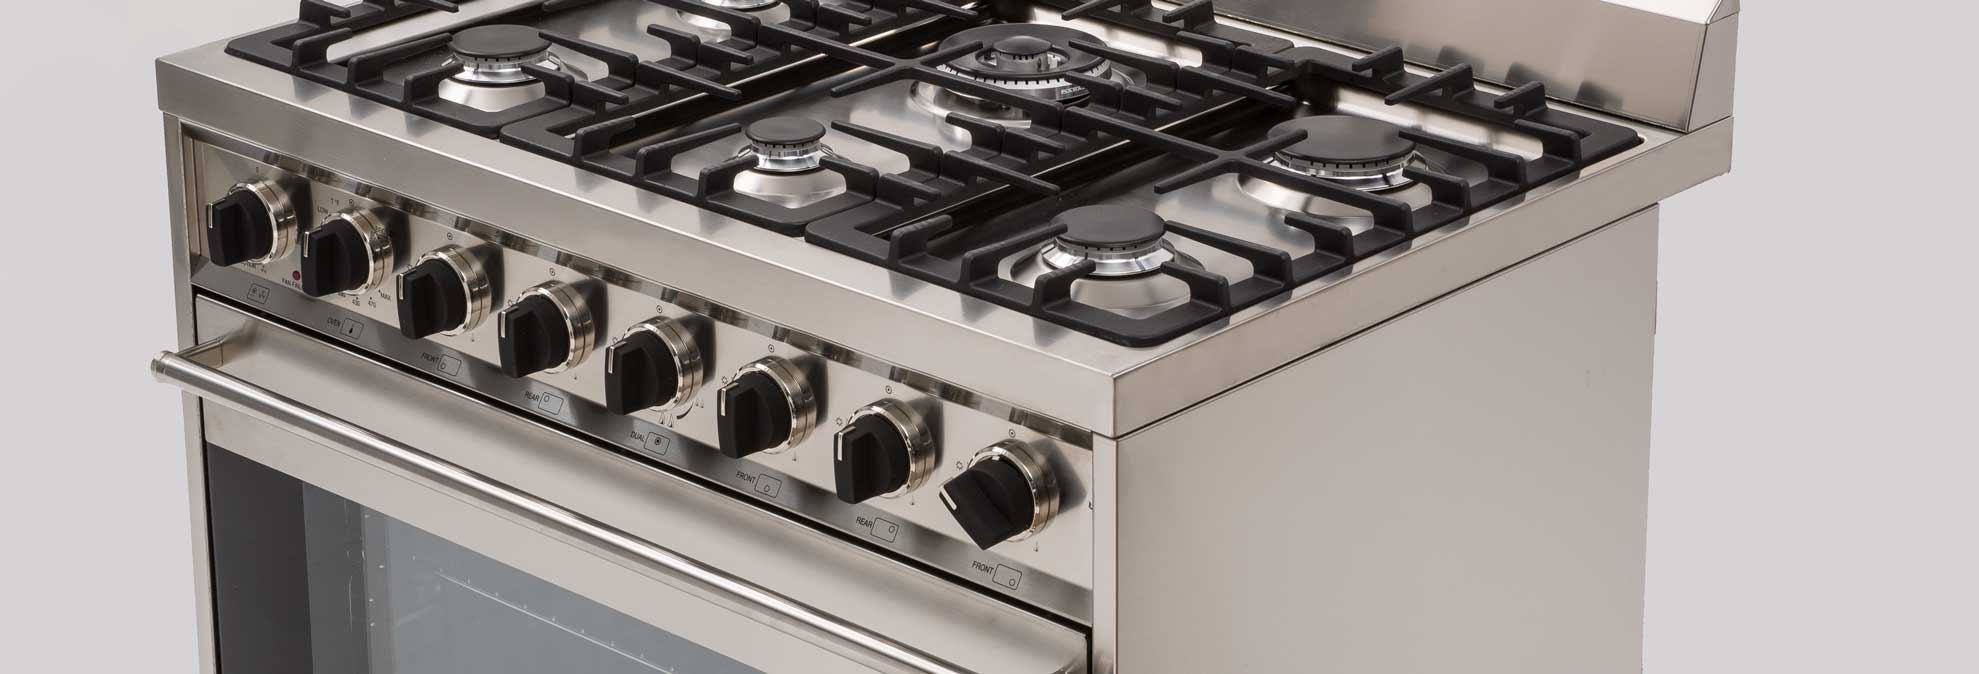 want to cook like a pro skip the pro style range consumer reports